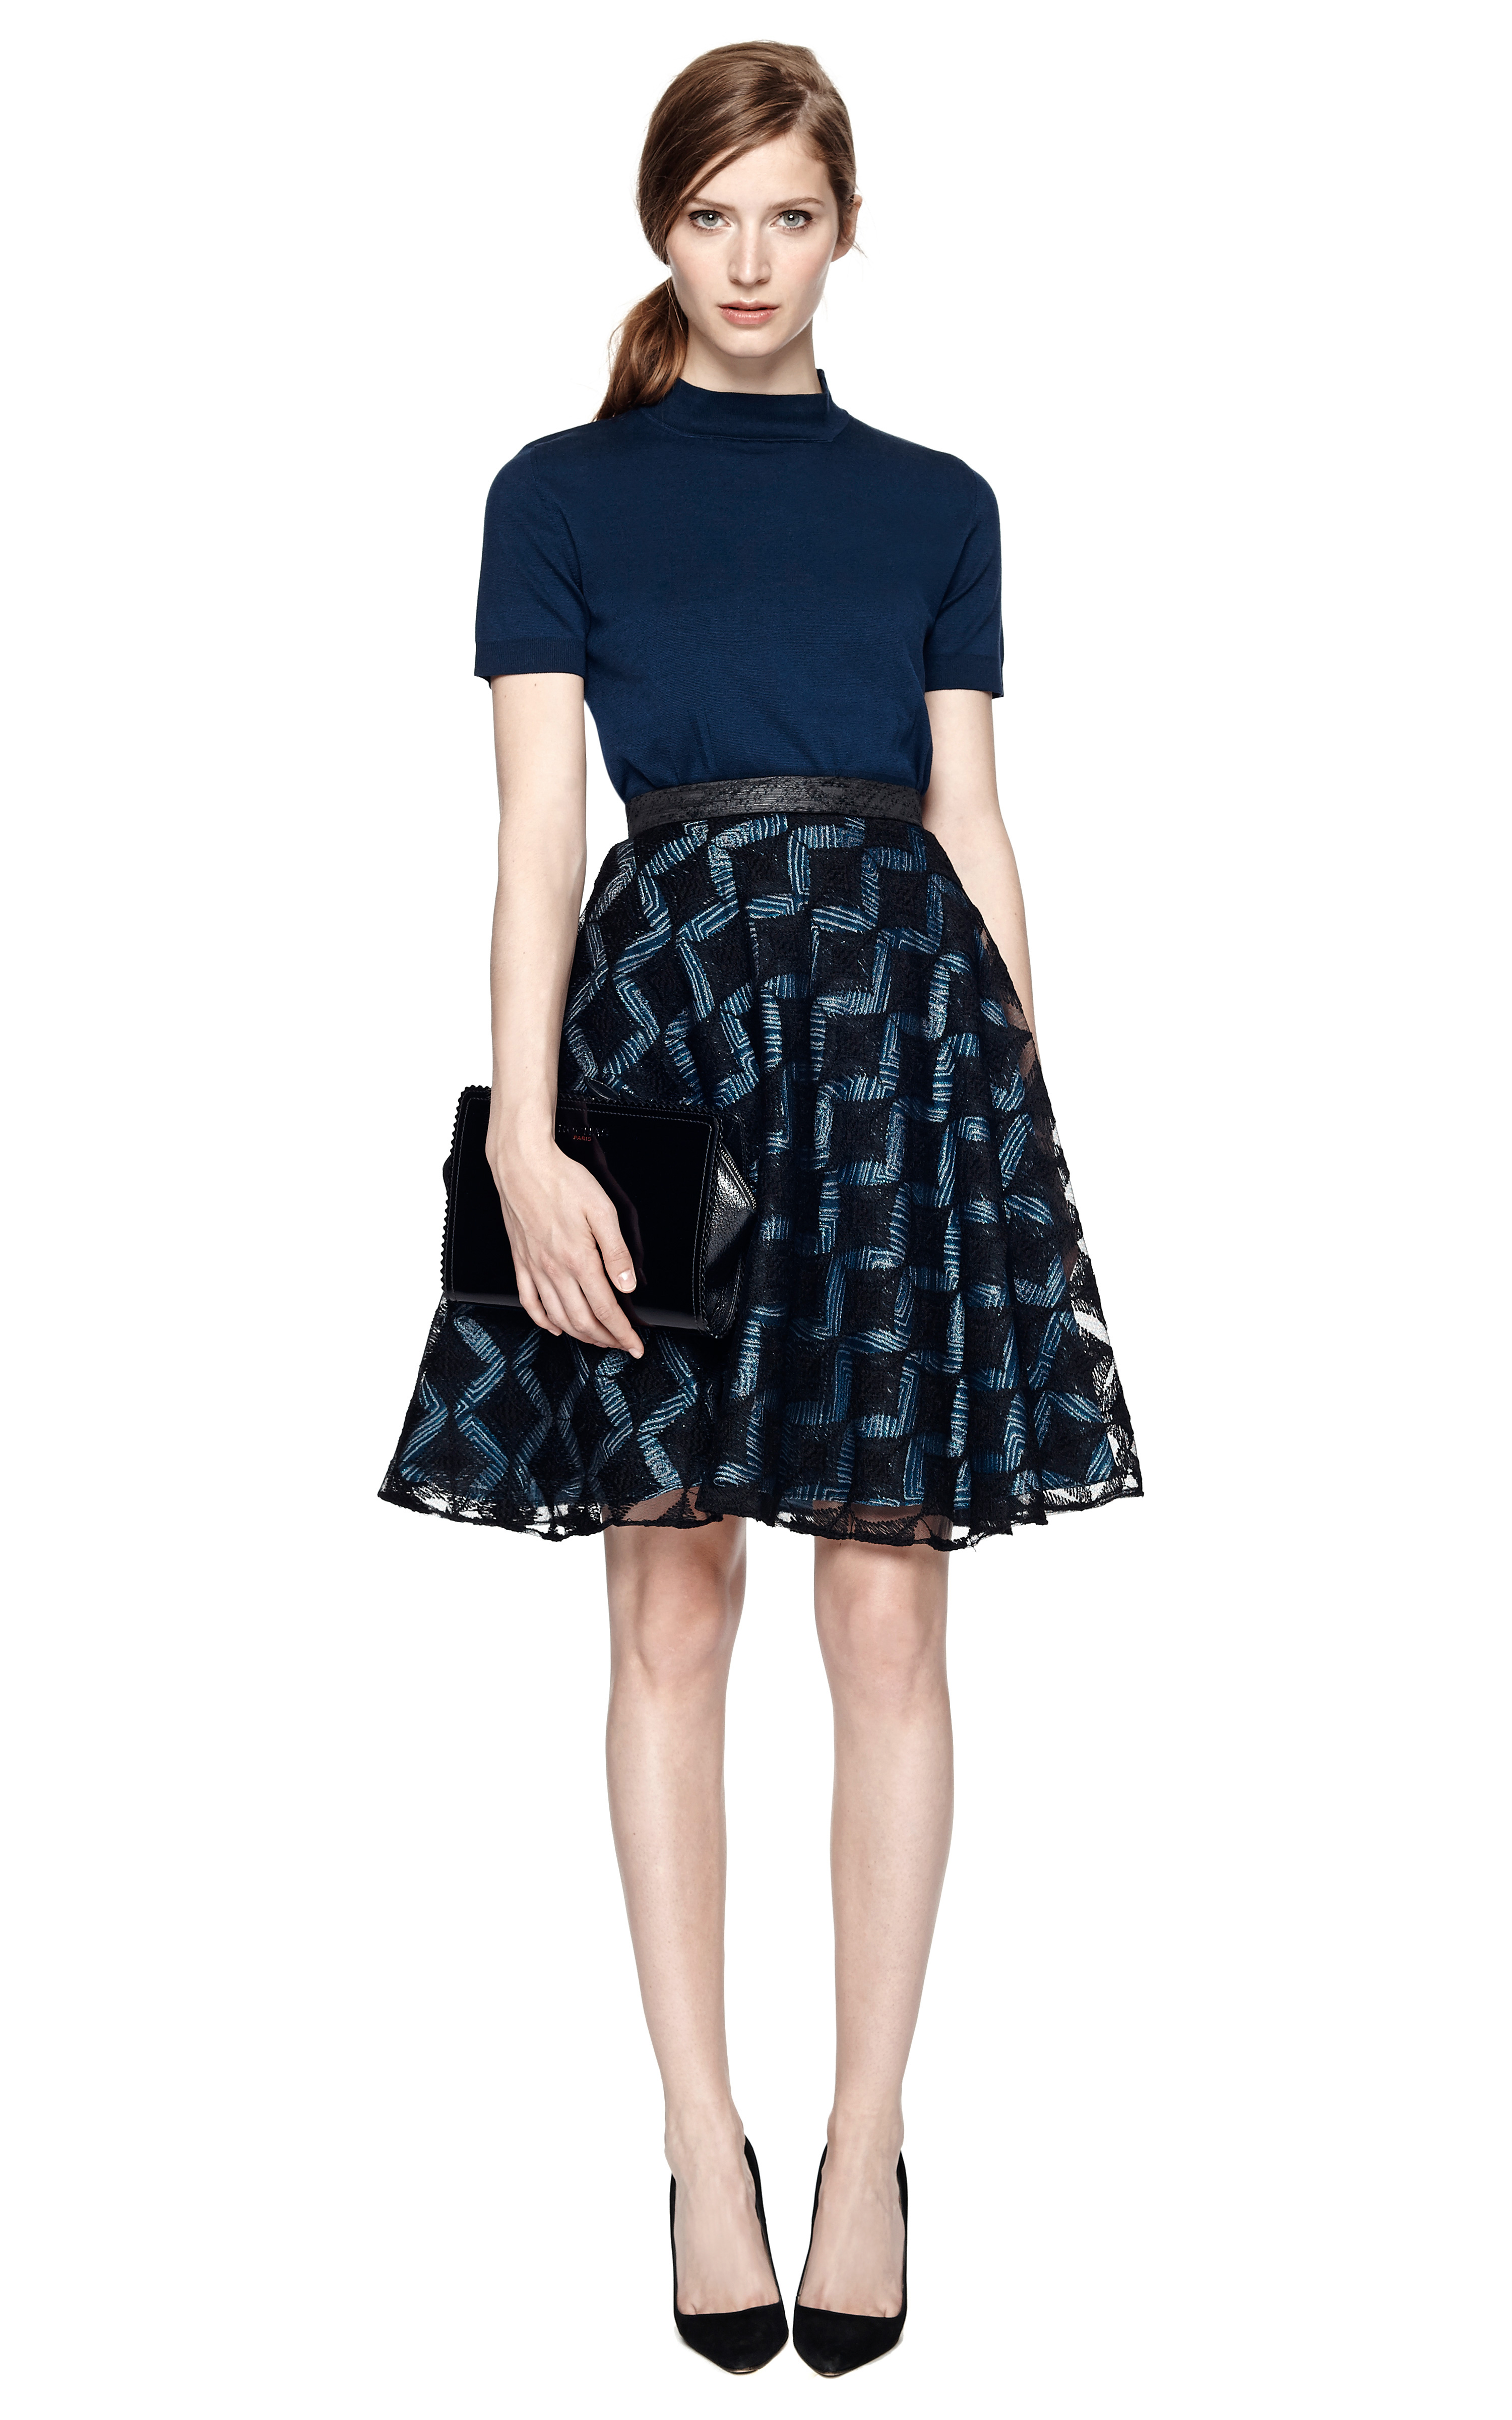 Her lined bodice is adorned with a metallic gold hued lace detail and leads to a navy blue hued multi-layered skirt. Her flair worthy A-line skirt features a pleated taffeta fabric that is accented with a voluminous petticoat. Dress is lined with a smooth knit fabric and offers a relaxed fit with minimal stretch.